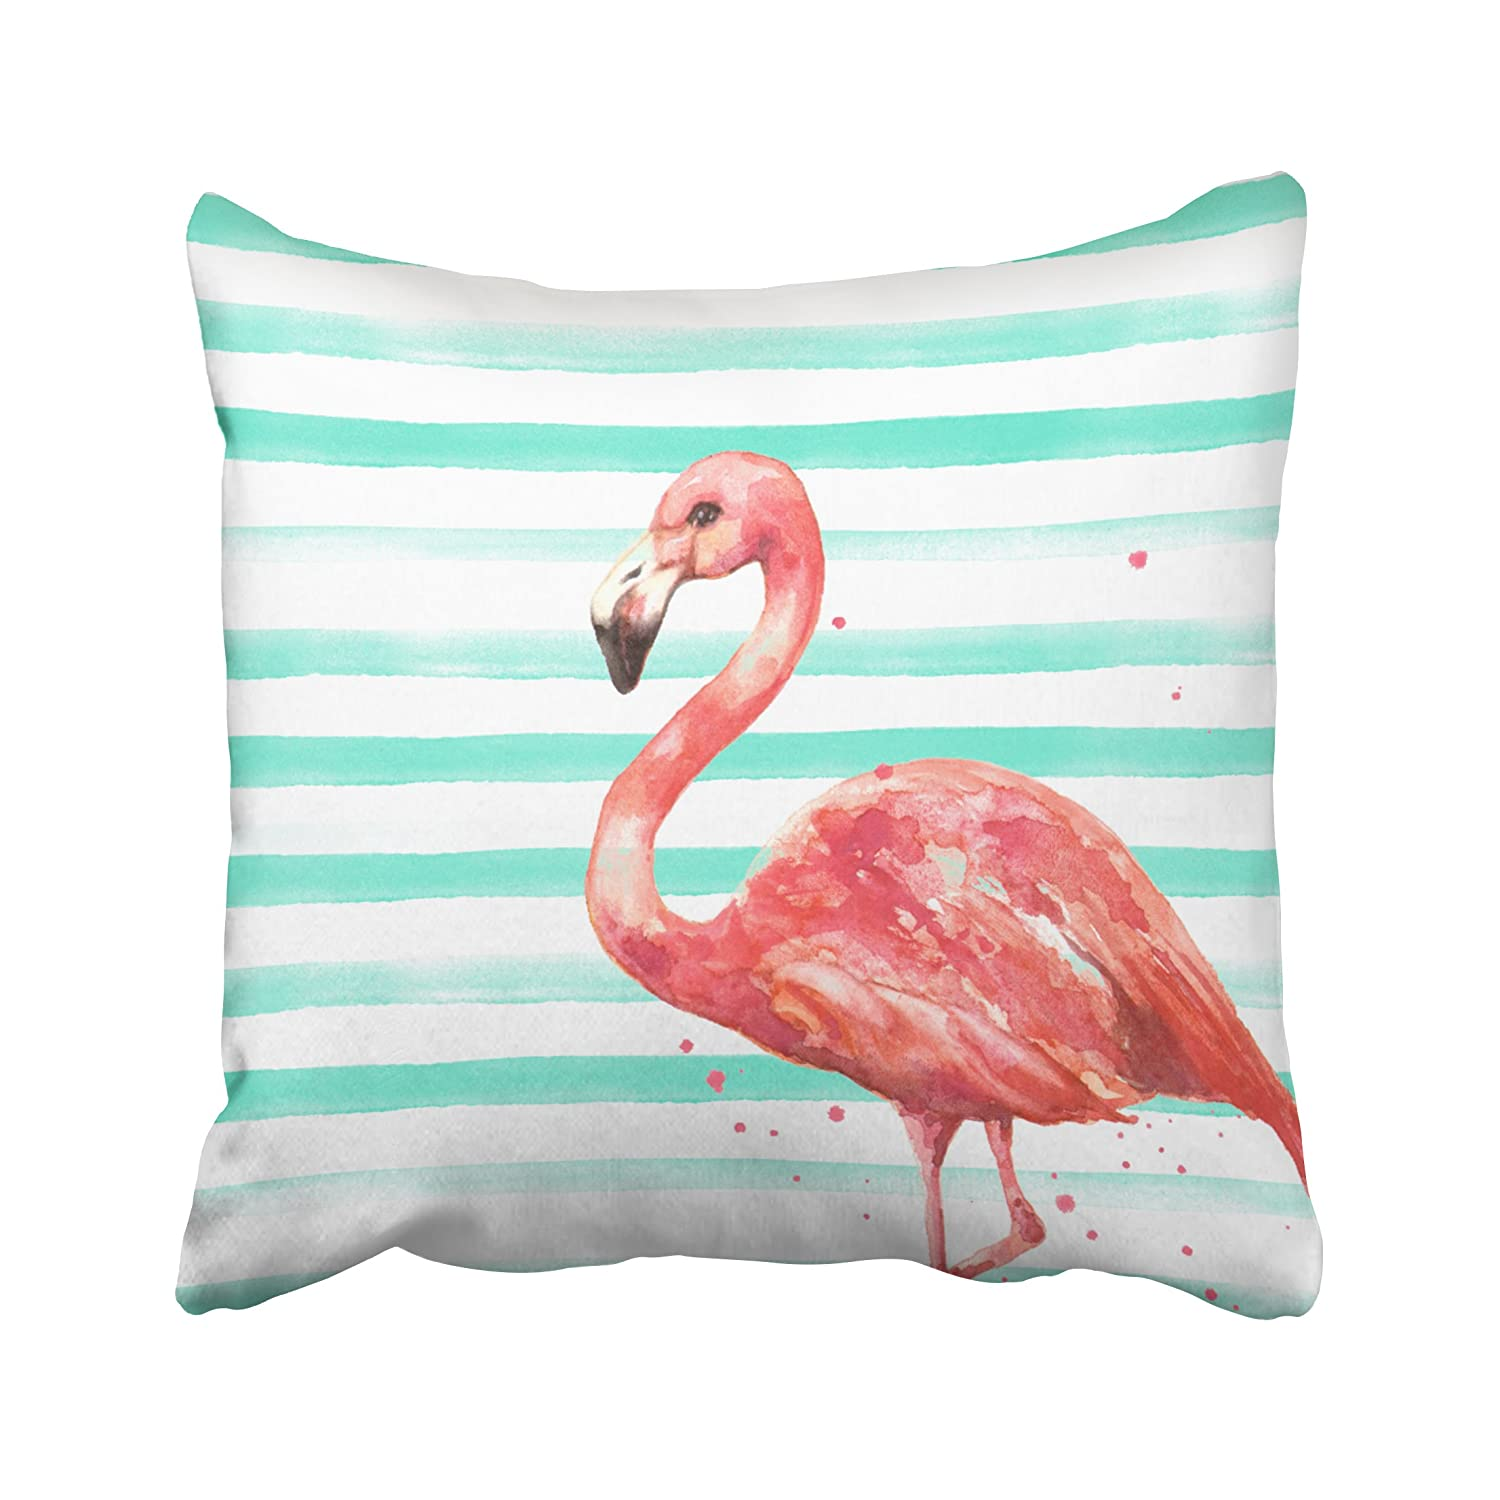 18X18 inch Fashion Style Zippered Cushion Pillow Cover ONELZ Flamingo with Stripes Square Decorative Throw Pillow Case